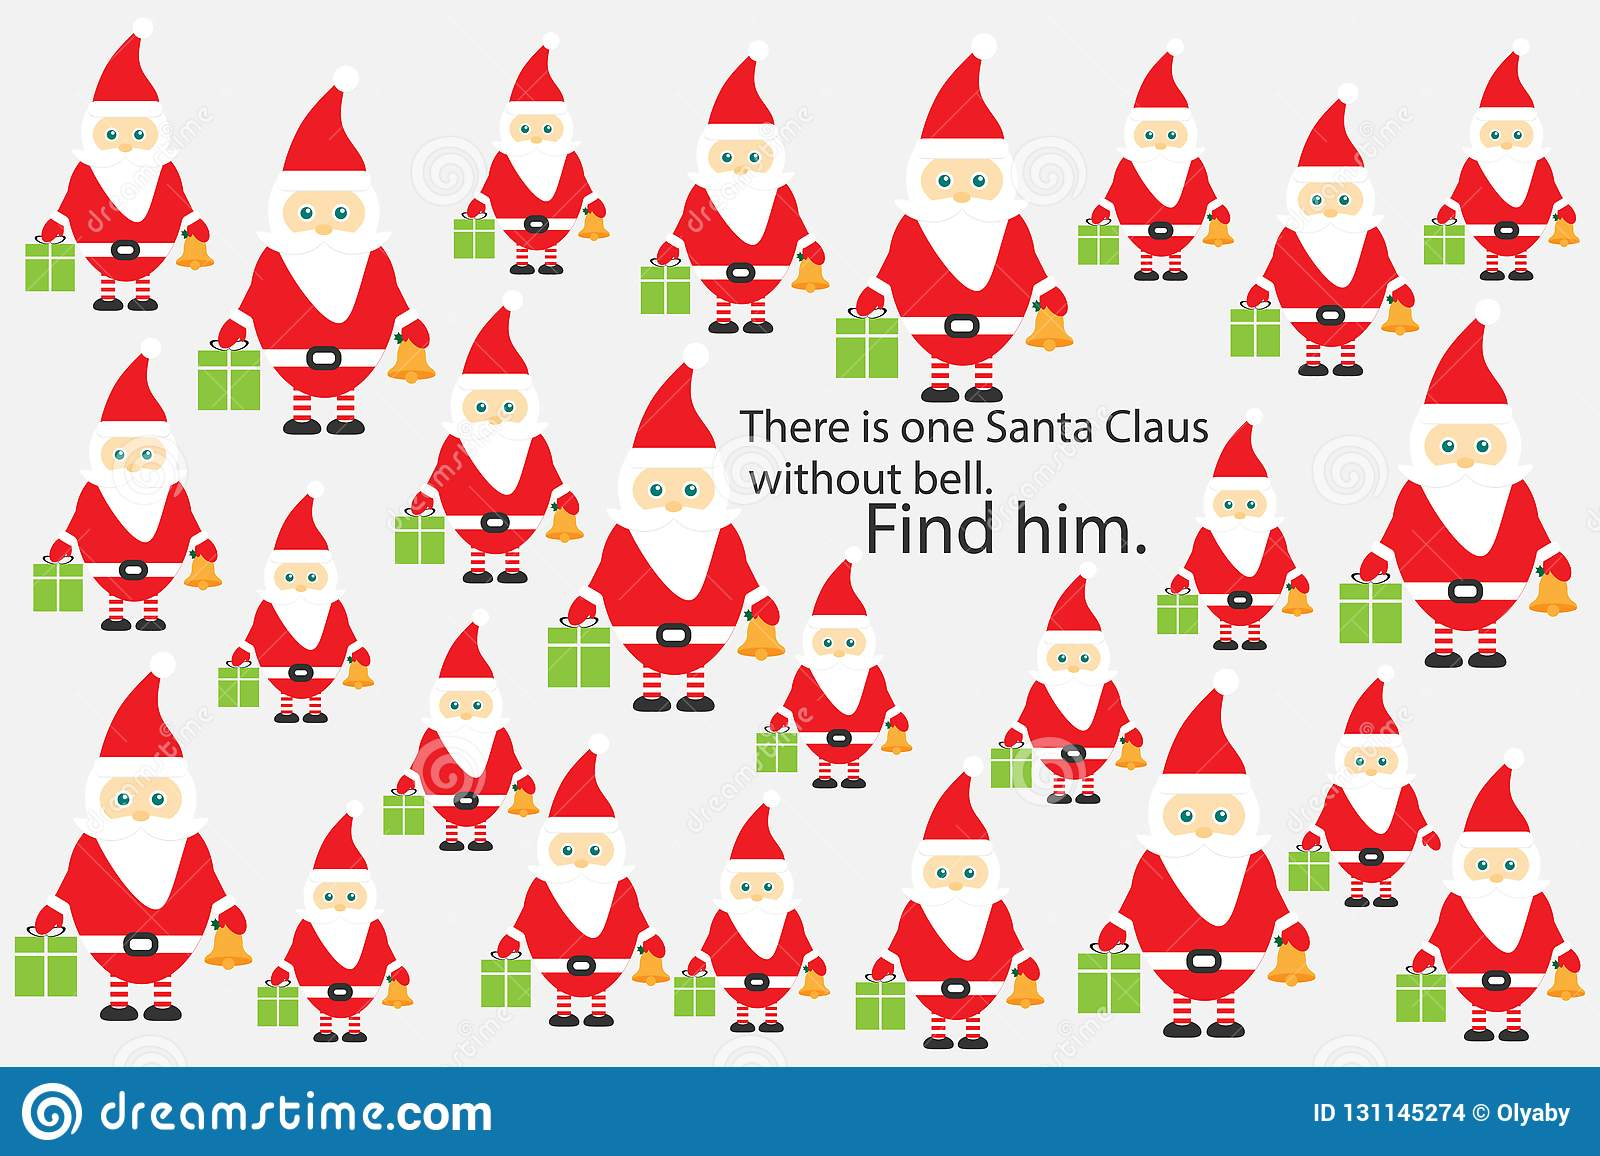 find santa claus without bell christmas fun education puzzle game